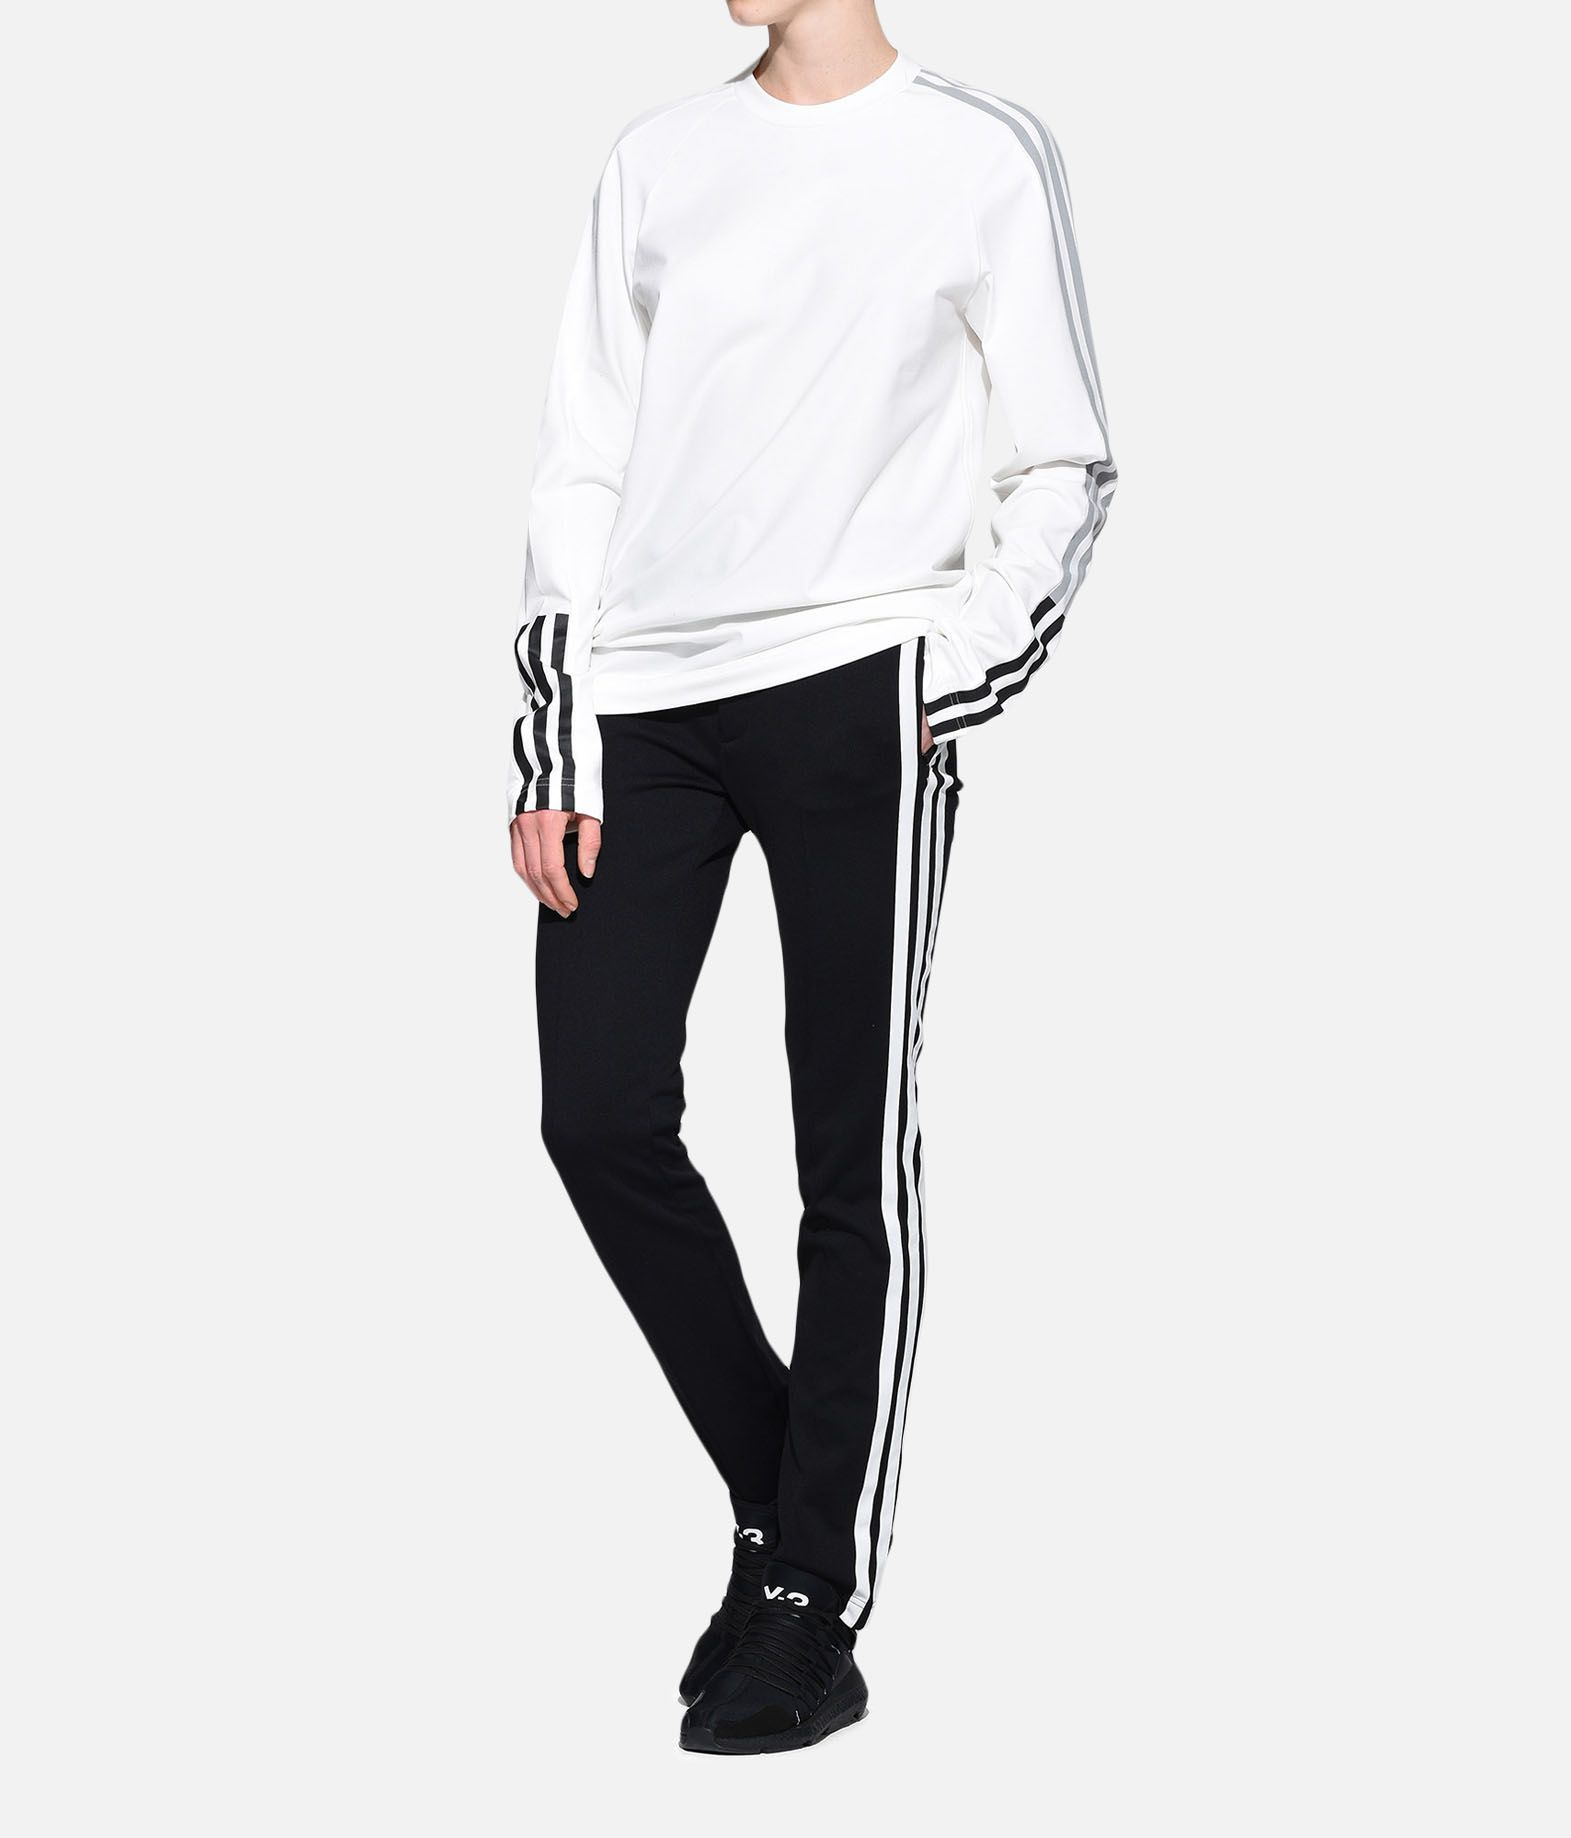 Y-3 Y-3 3-Stripes Tee Long sleeve t-shirt Woman a